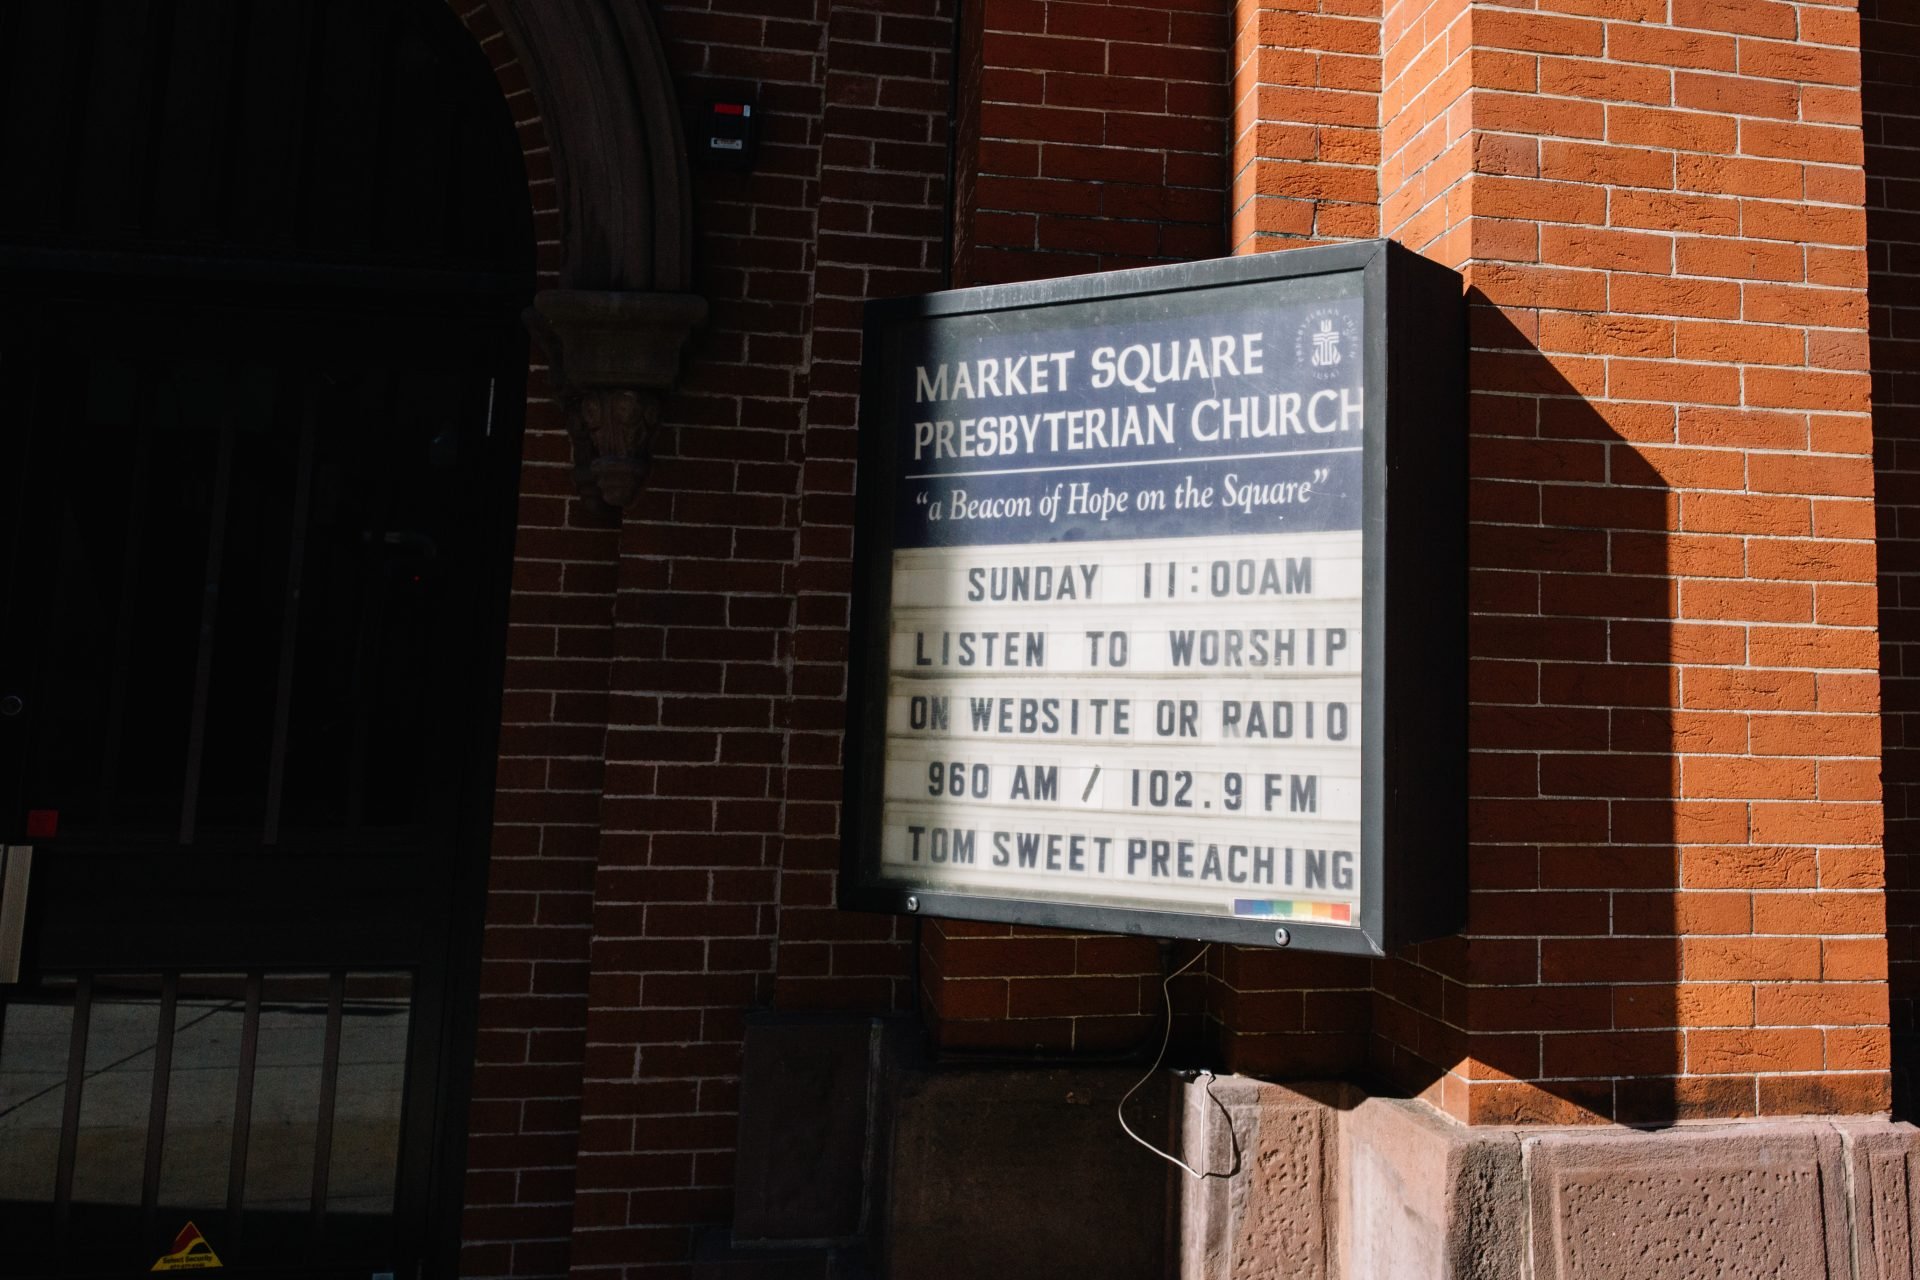 A sign promotes virtual services at Market Square Presbyterian Church in Harrisburg on April 10, 2020.